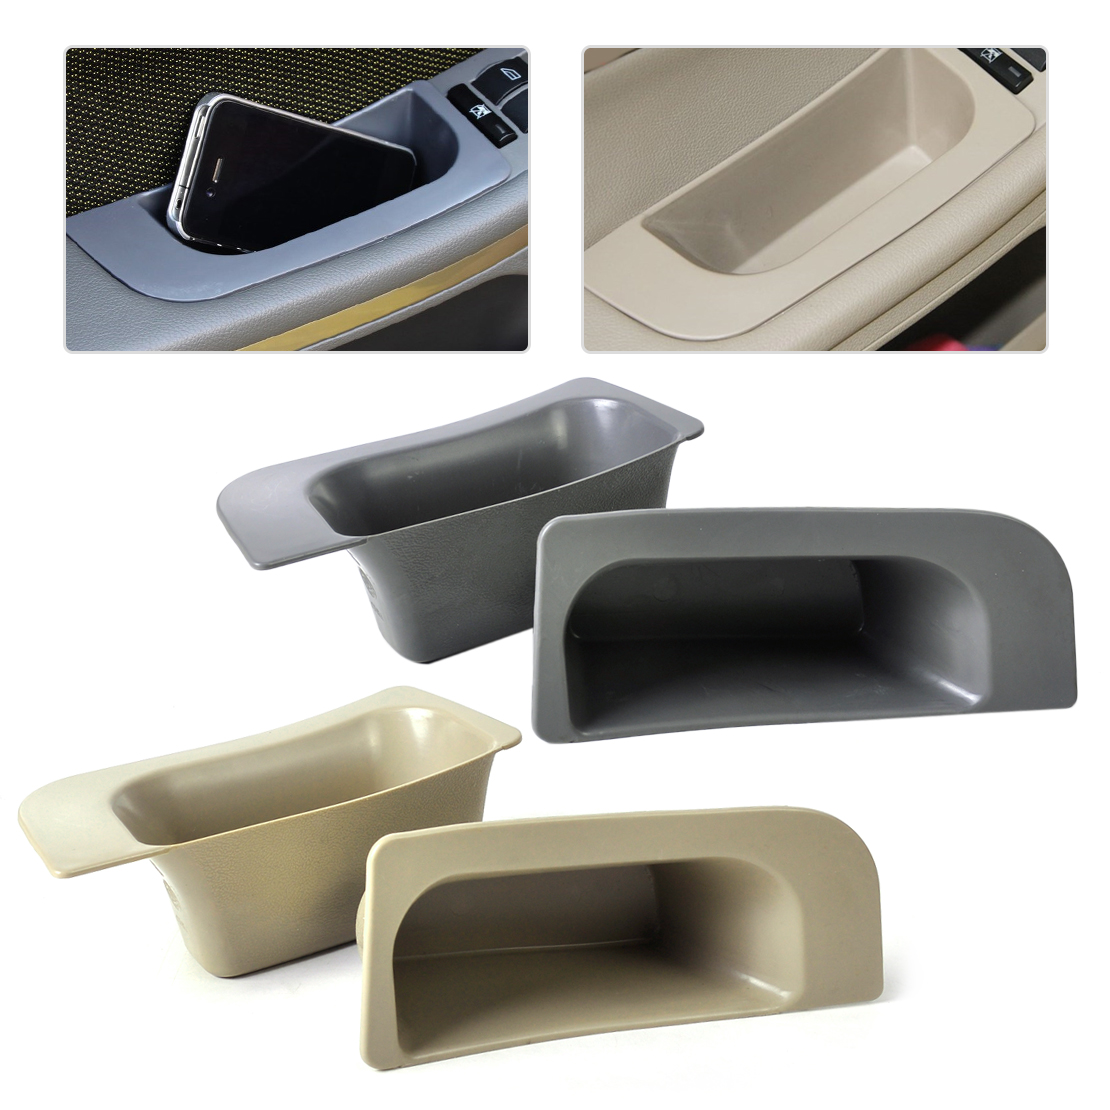 DWCX 2Pcs/lot Car Interior Left + Right Door Glove Slot Storage Box Container Holder Organizer Fit for Ford Focus 2009 2010 2011